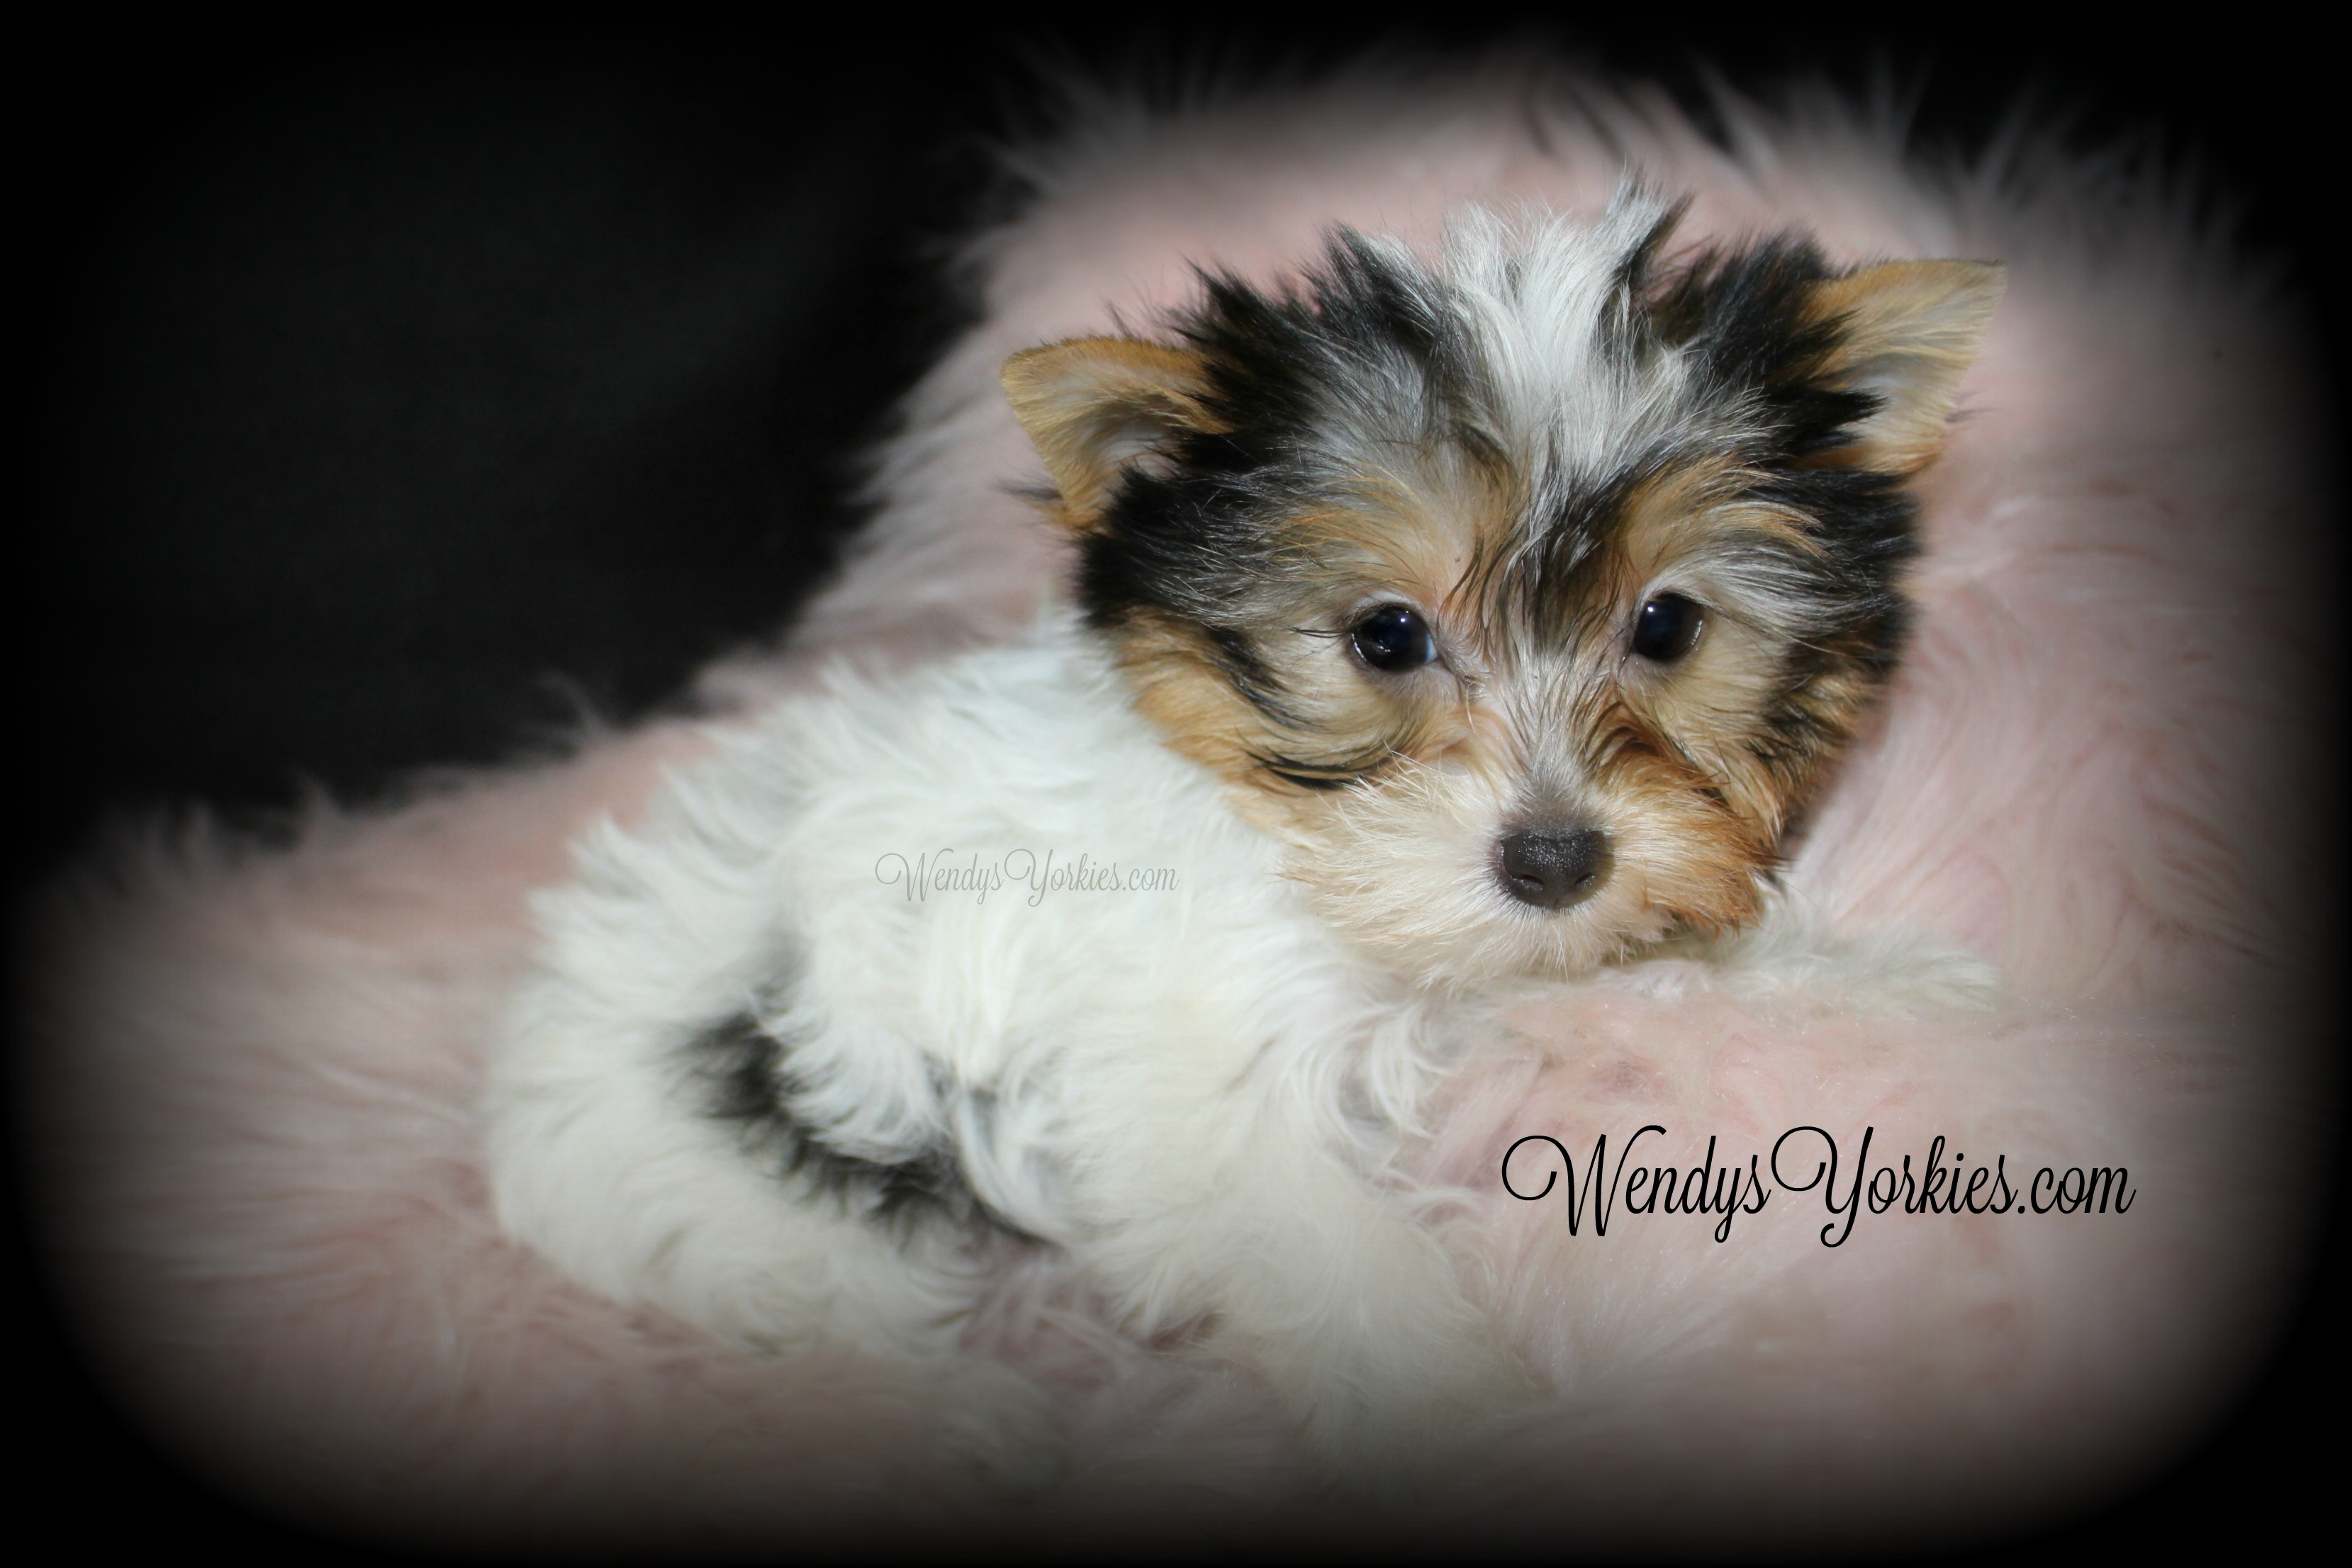 Tiny Parti Yorkie puppy for sale, Party Yorkies for sale, WendysYorkies.com, Daisy Pf1